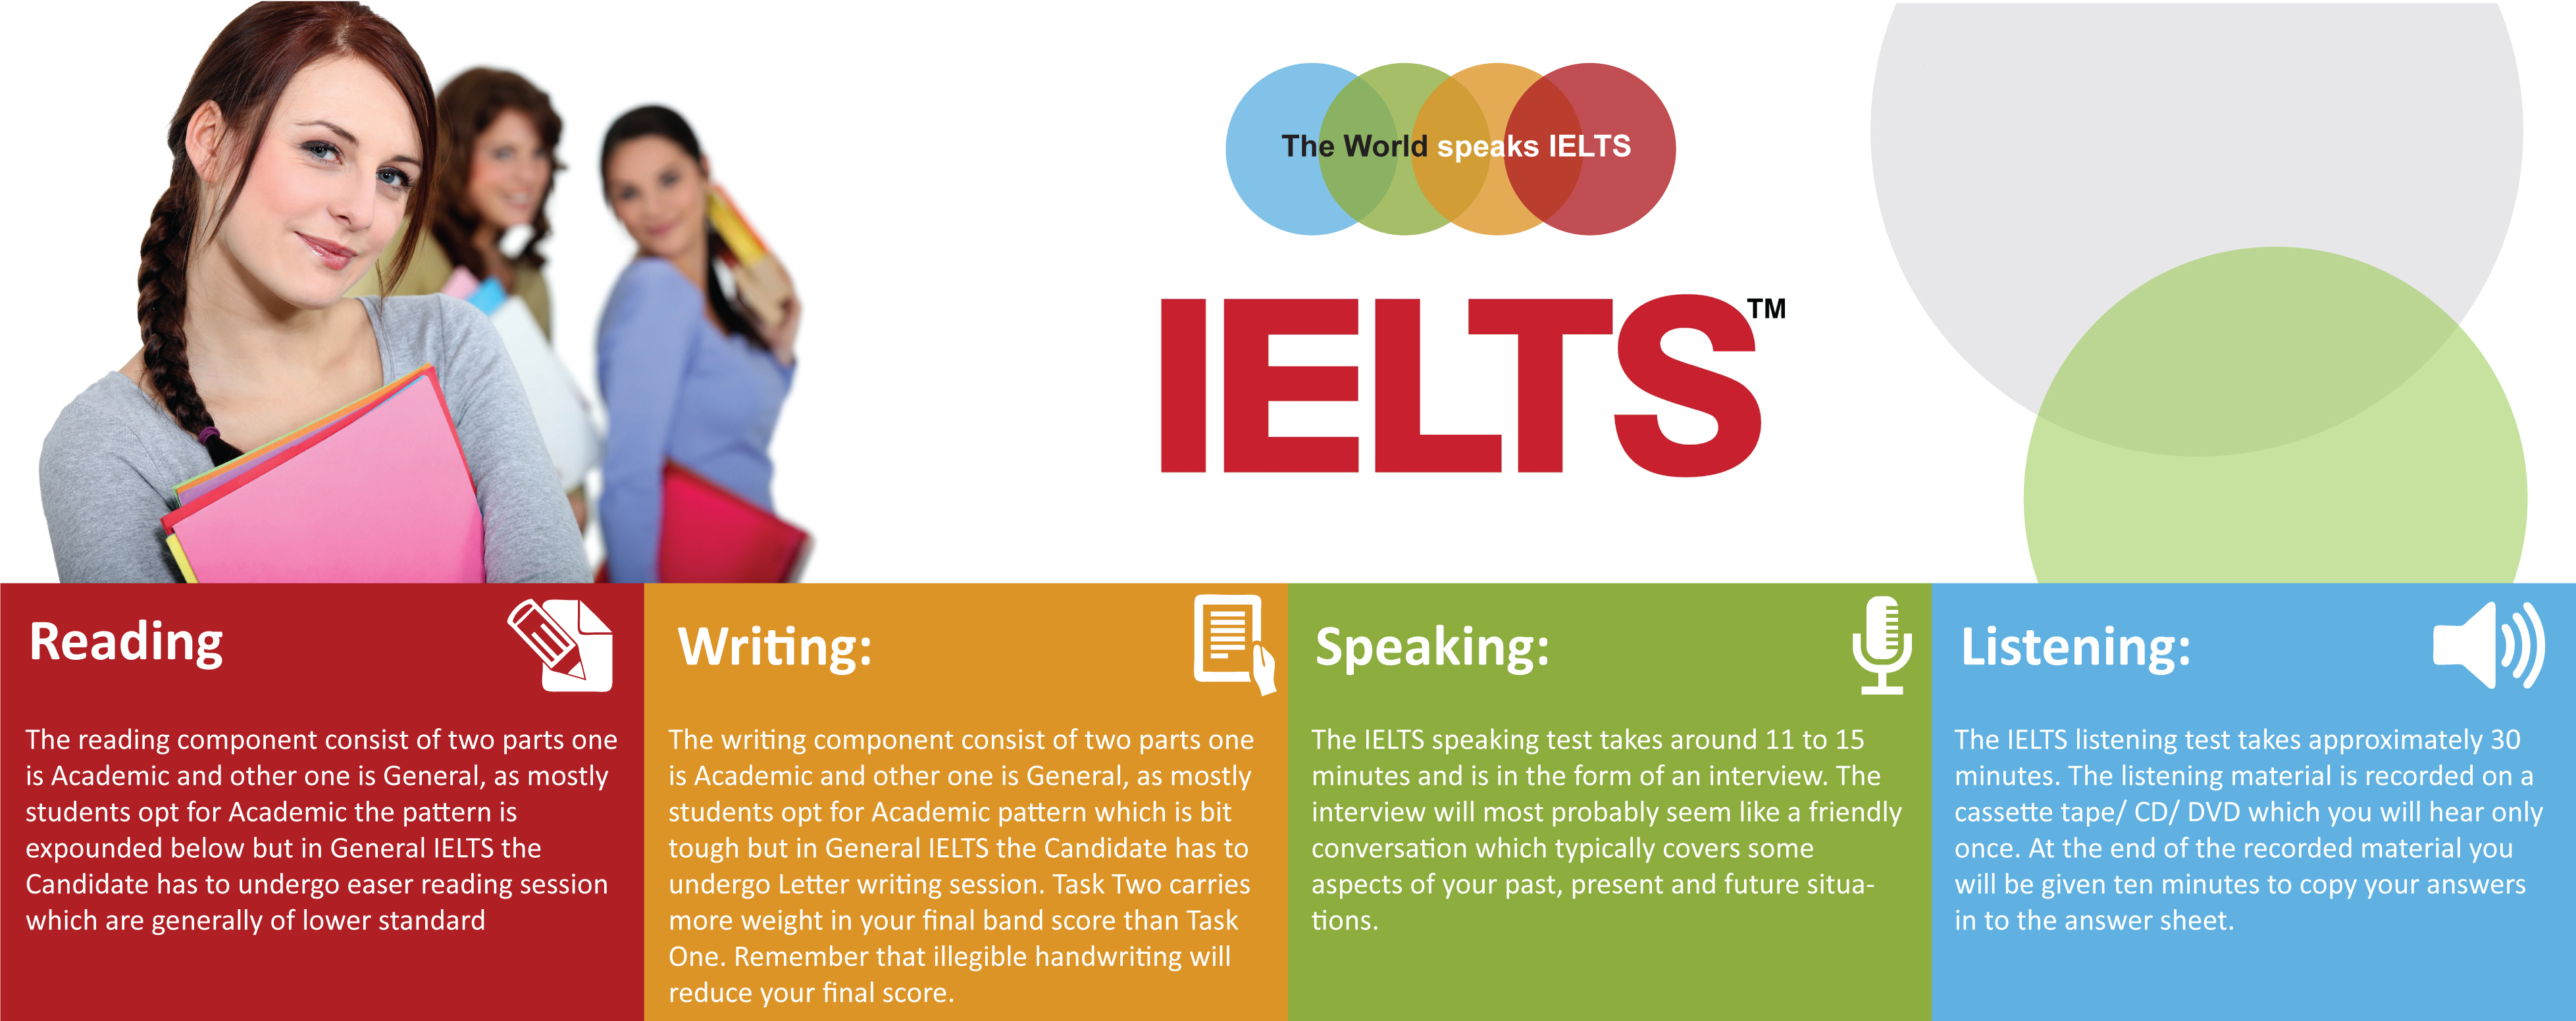 IELTS Training Coaching Center in Lahore Pakistan ...